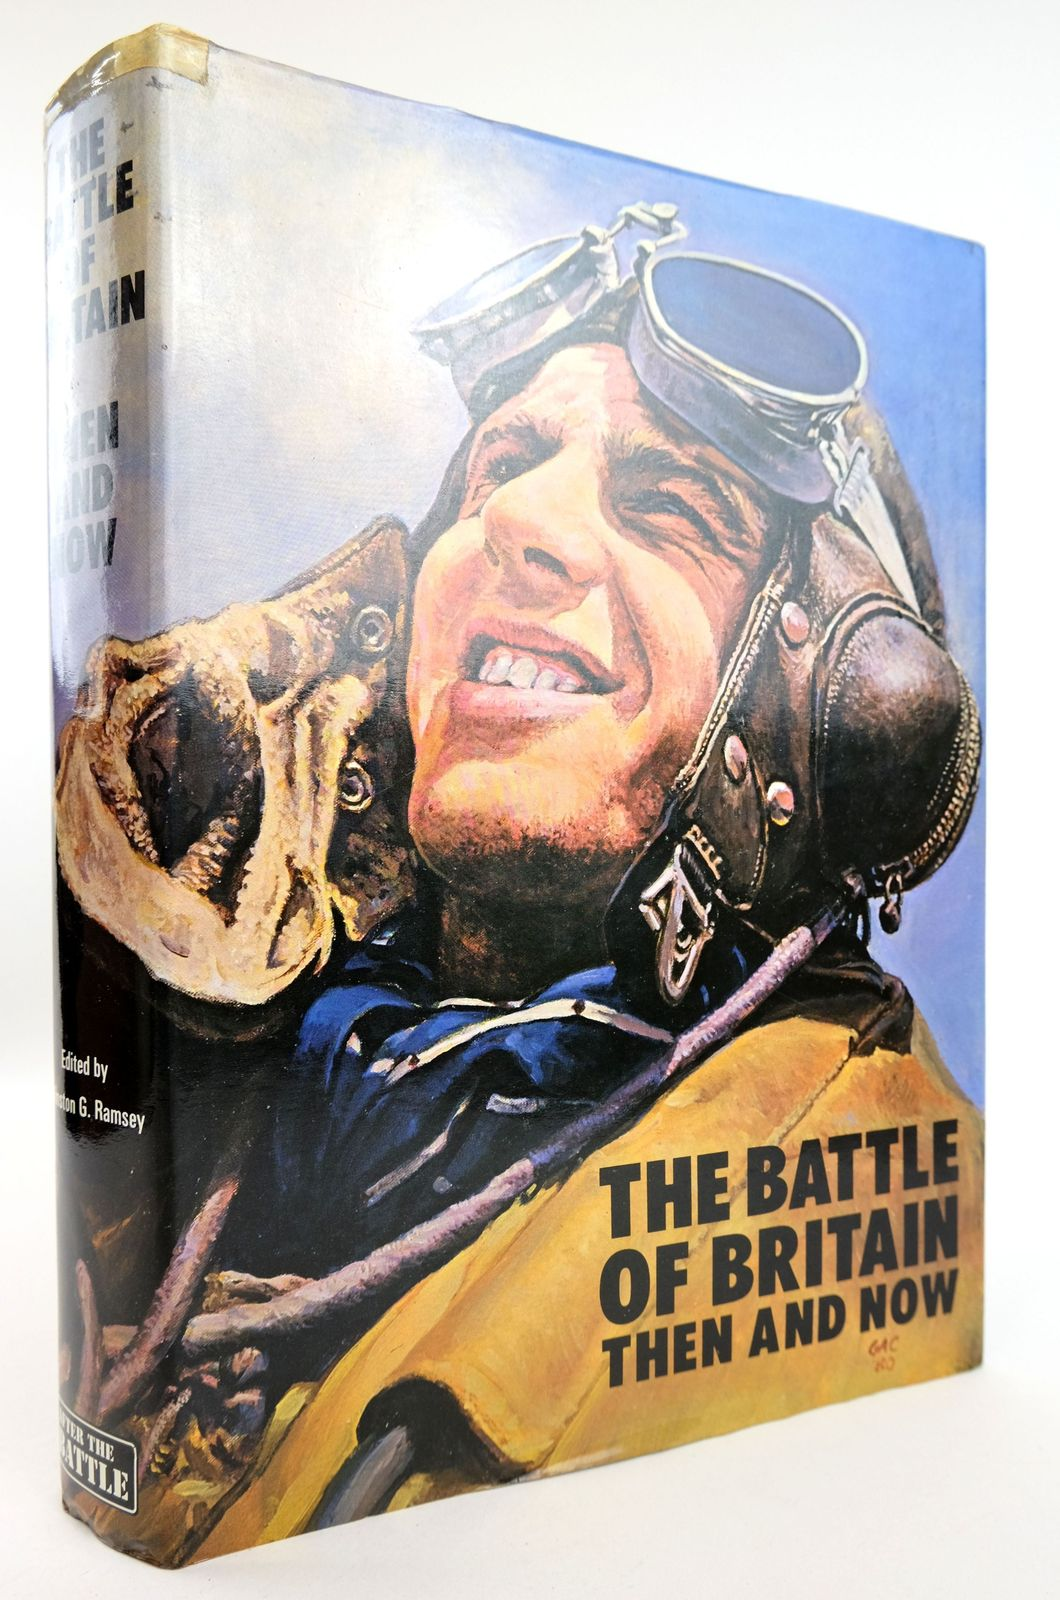 Photo of THE BATTLE OF BRITAIN THEN AND NOW written by Ramsey, Winston G. published by Battle of Britain Prints International Ltd. (STOCK CODE: 1819013)  for sale by Stella & Rose's Books